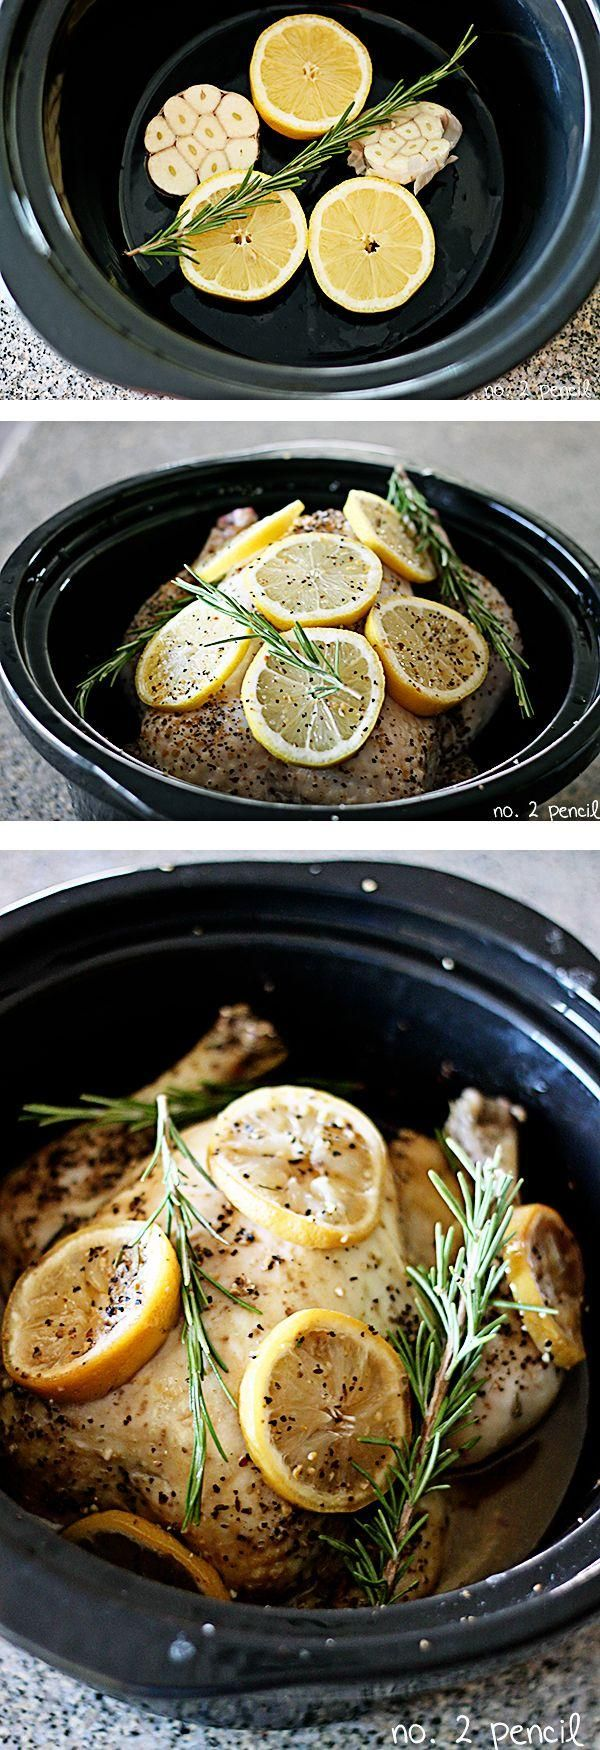 Slow Cooker Lemon Garlic Chicken -> Maybe I can adapt it for cooking with a Dutch Oven at a LARP